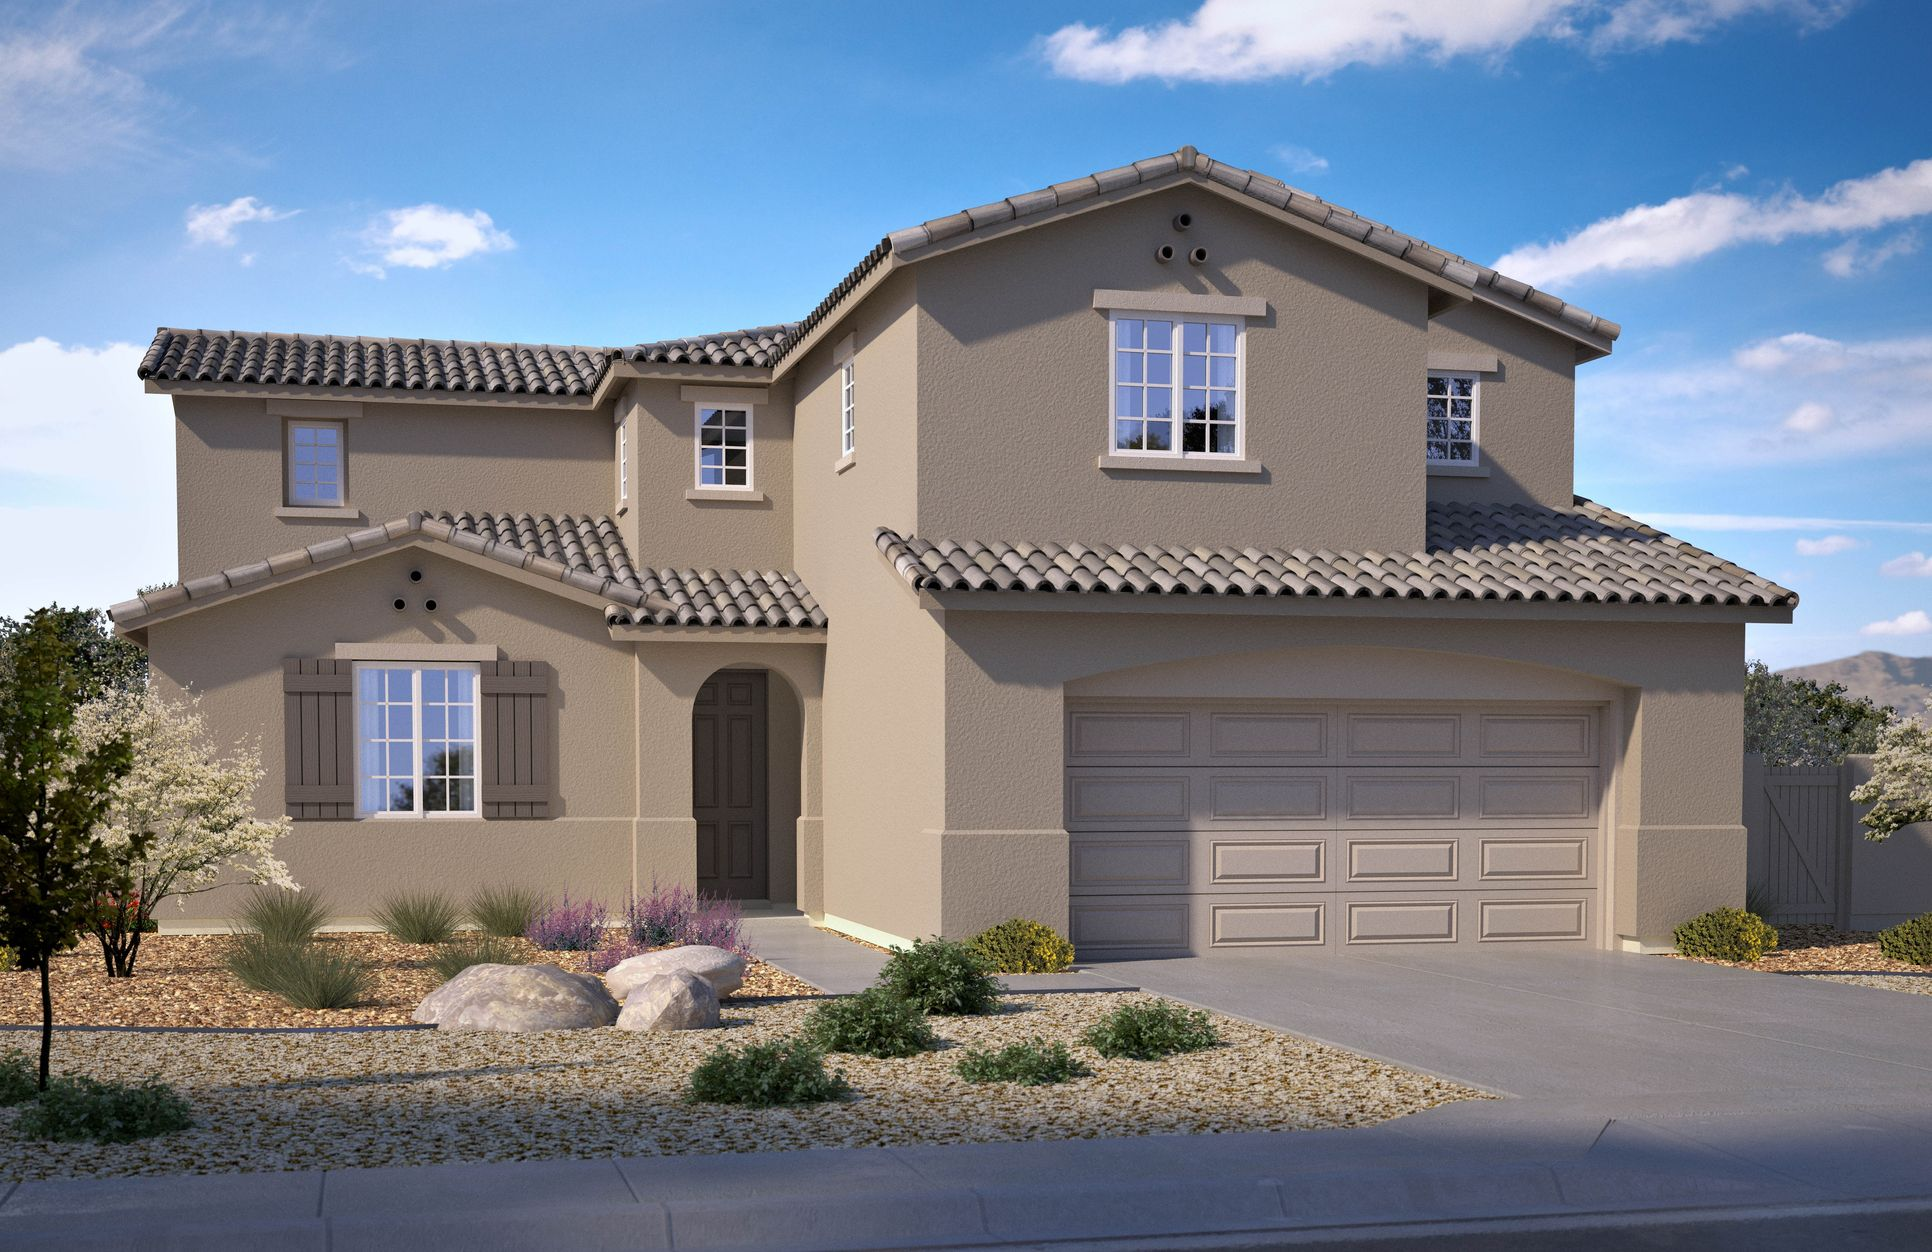 Residence 2155 :Elevation A